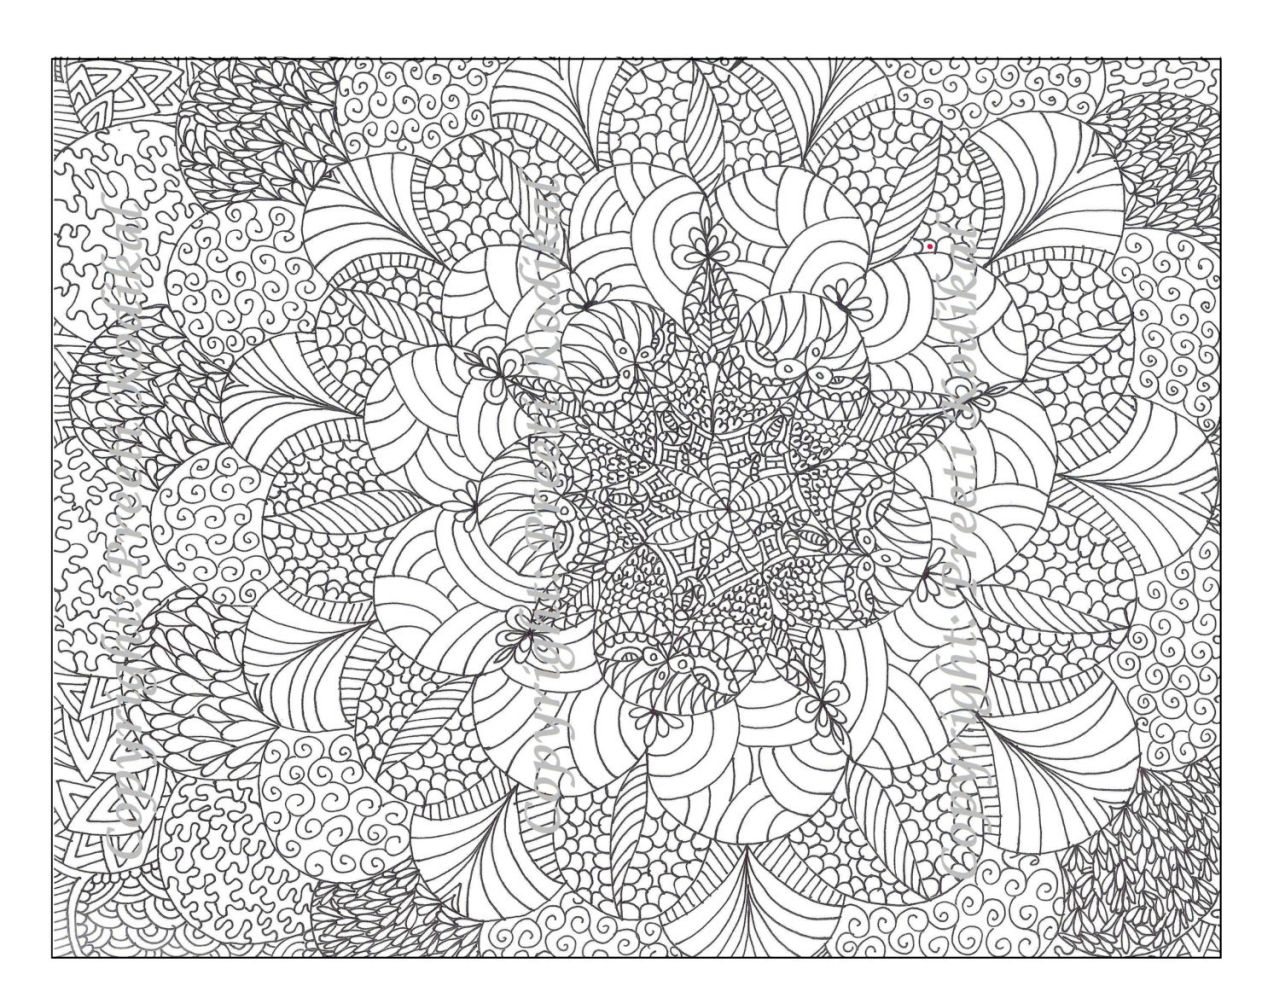 Flower Design Coloring Pages - 35647